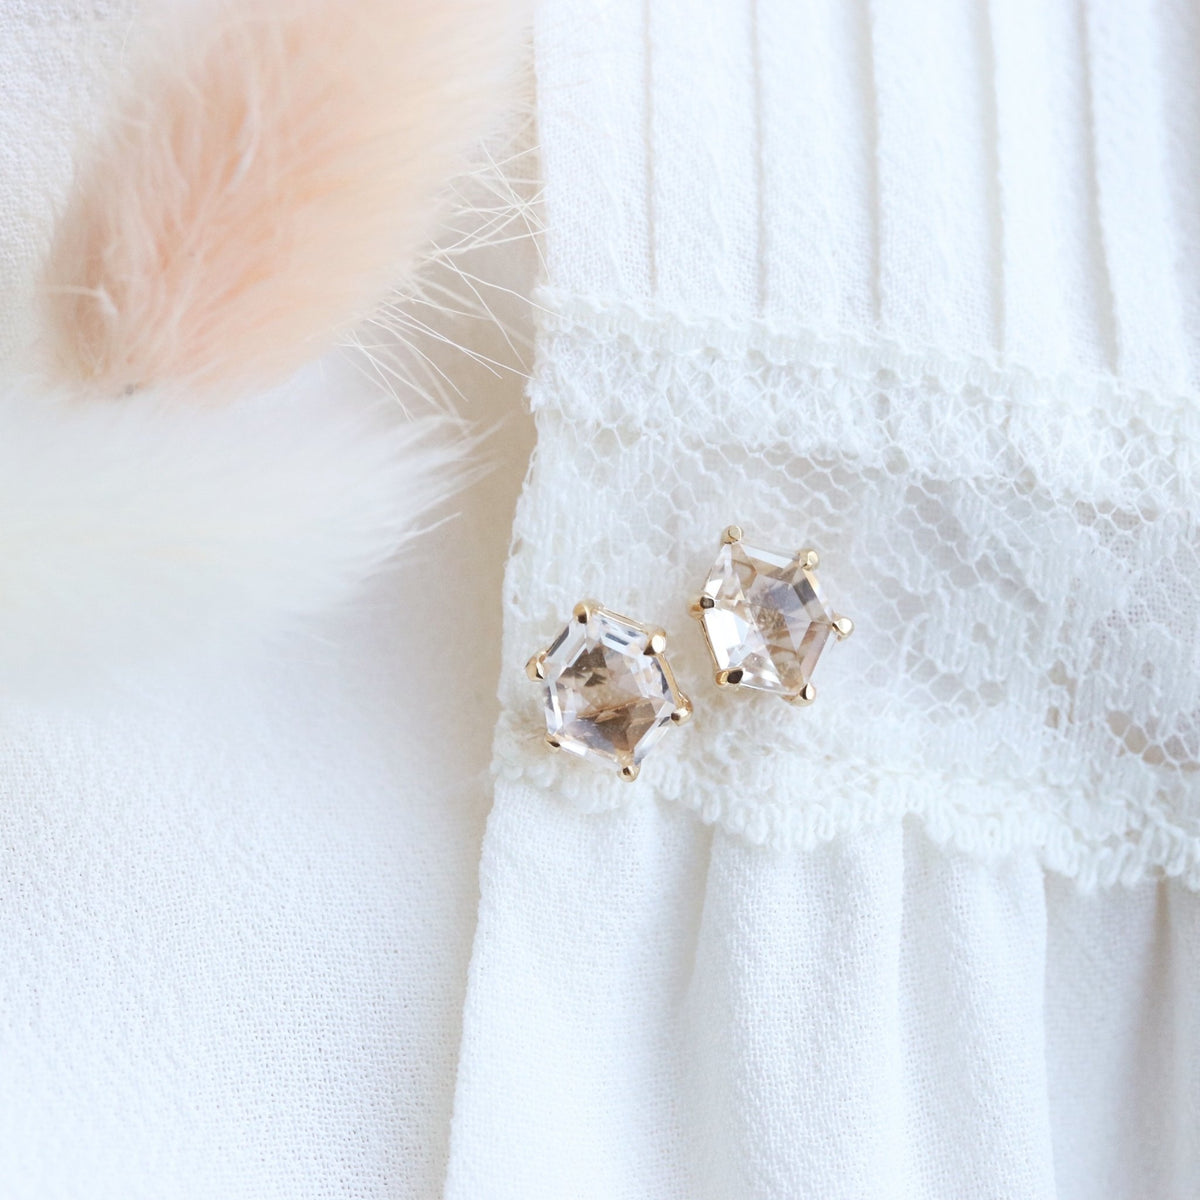 MINI HONOUR STUD EARRINGS - WHITE TOPAZ & GOLD - SO PRETTY CARA COTTER